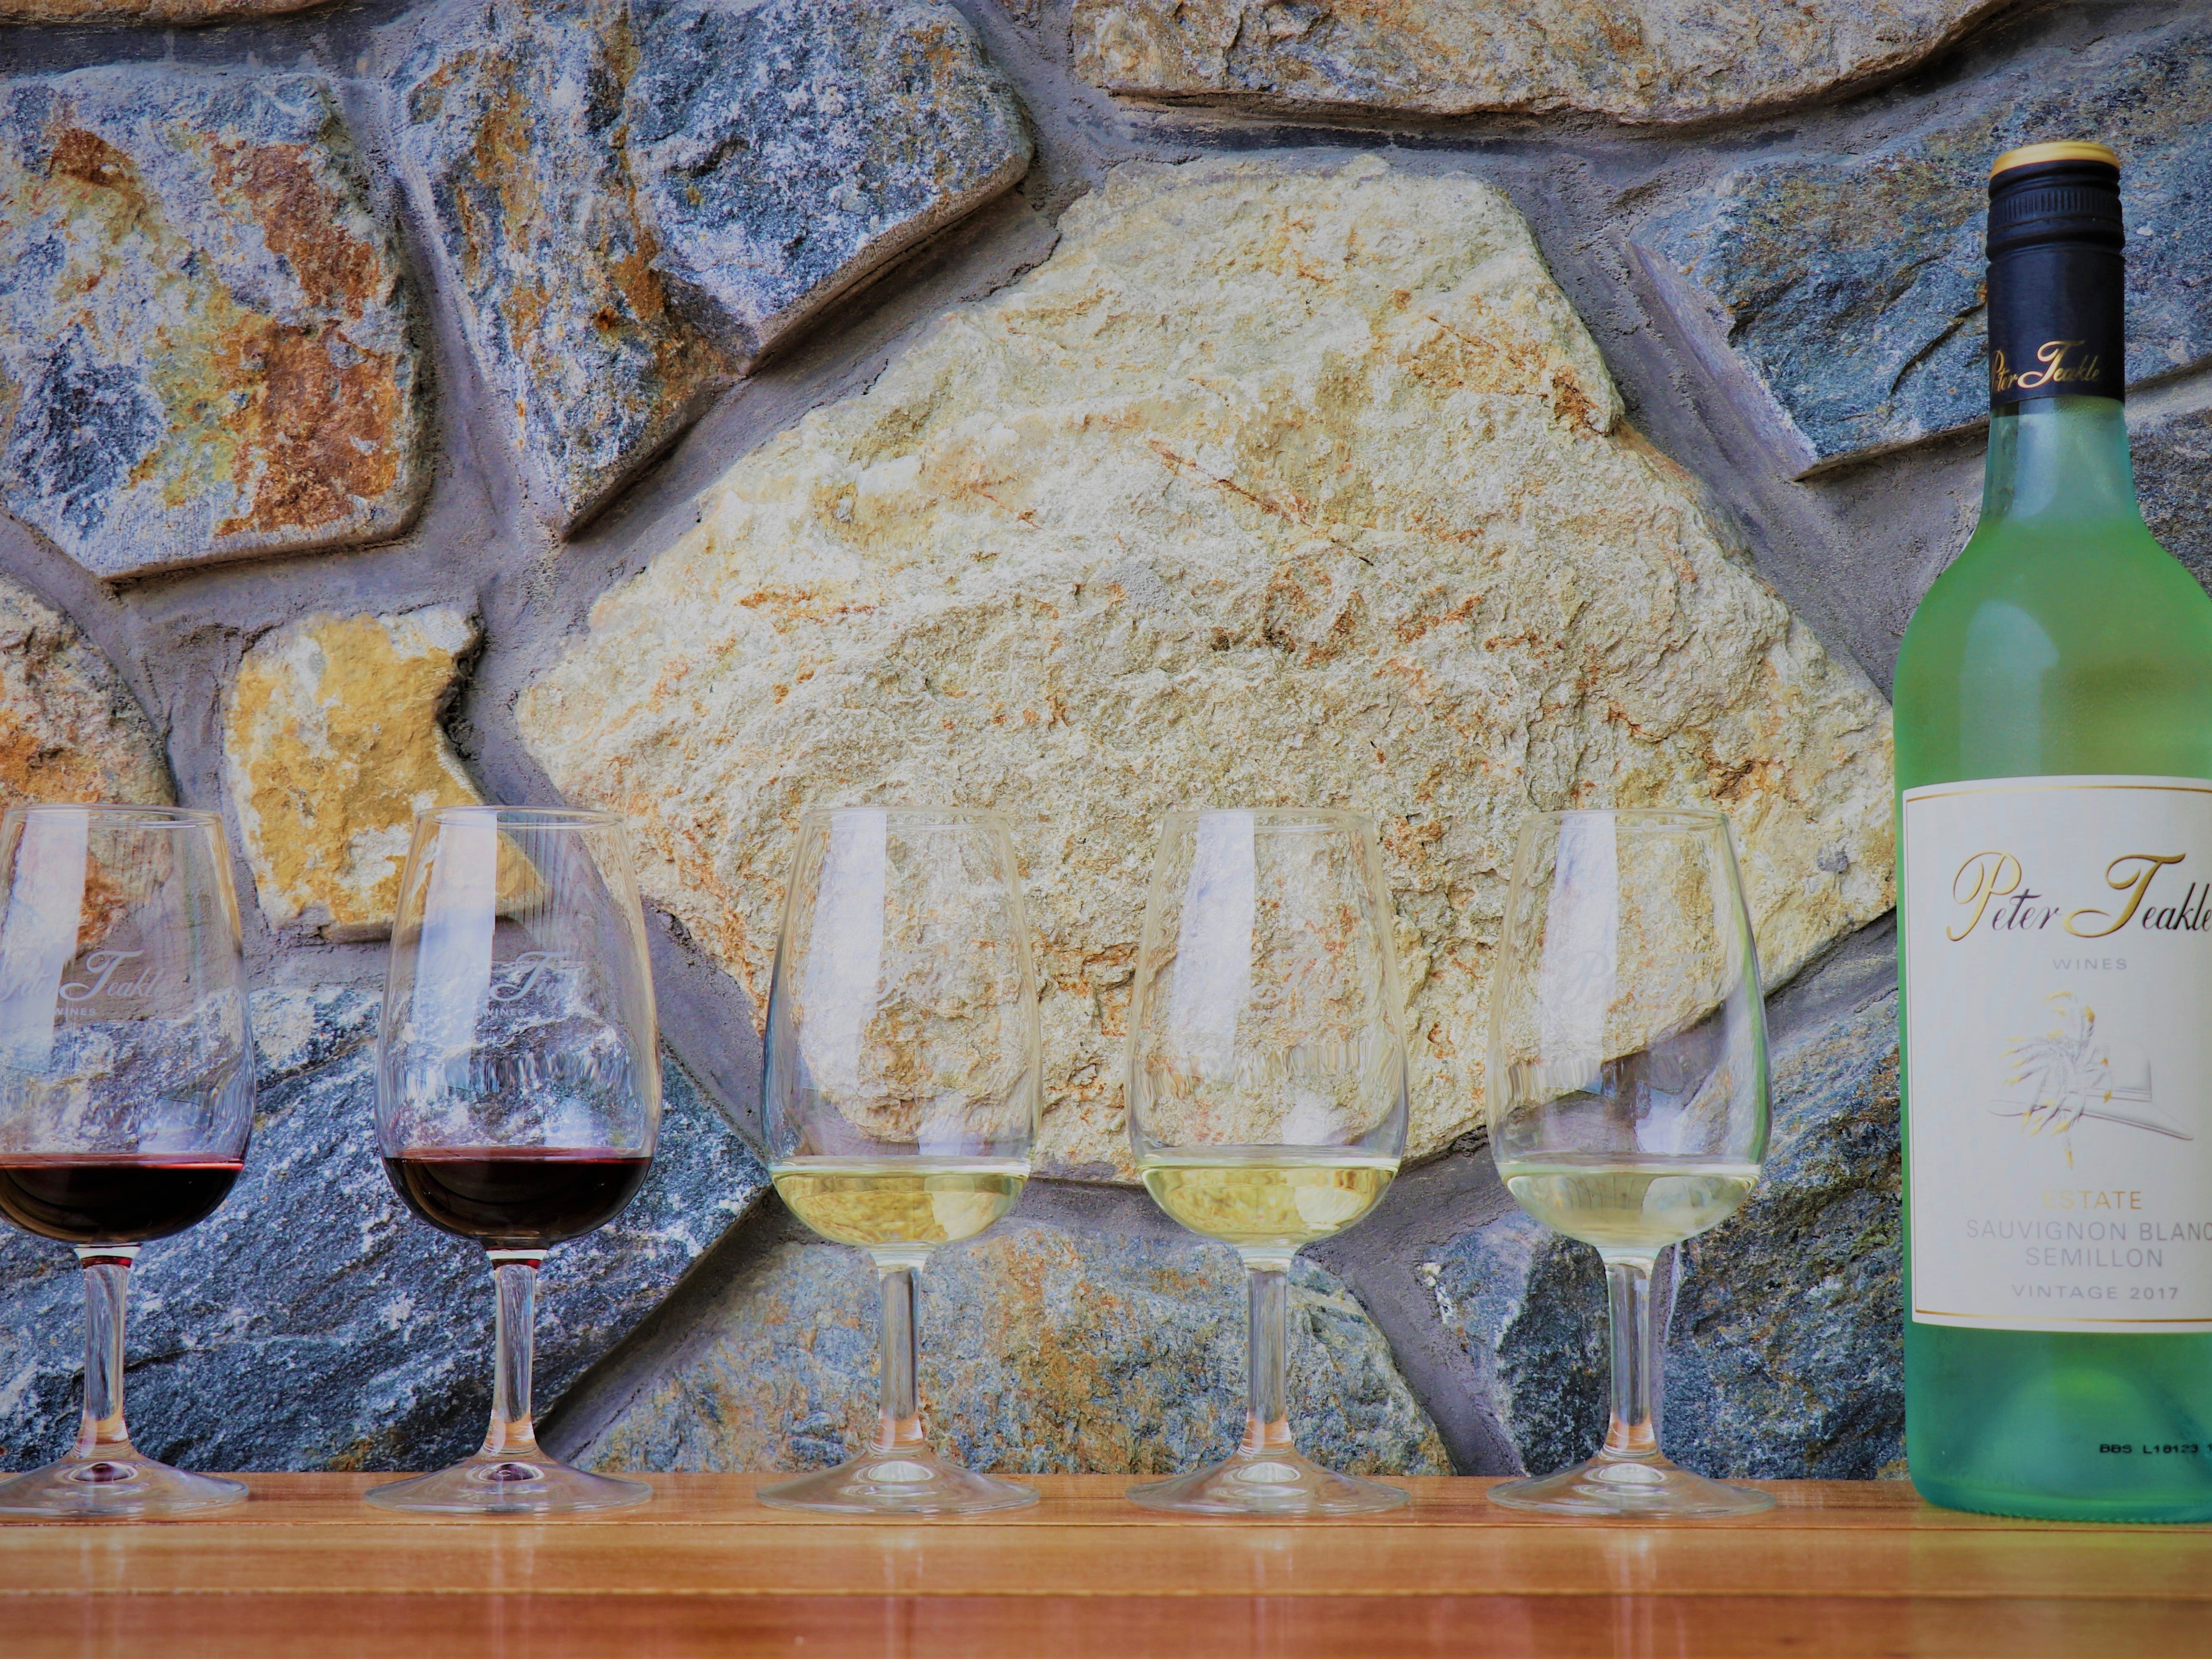 Peter Teakle Wines - Accommodation Burleigh